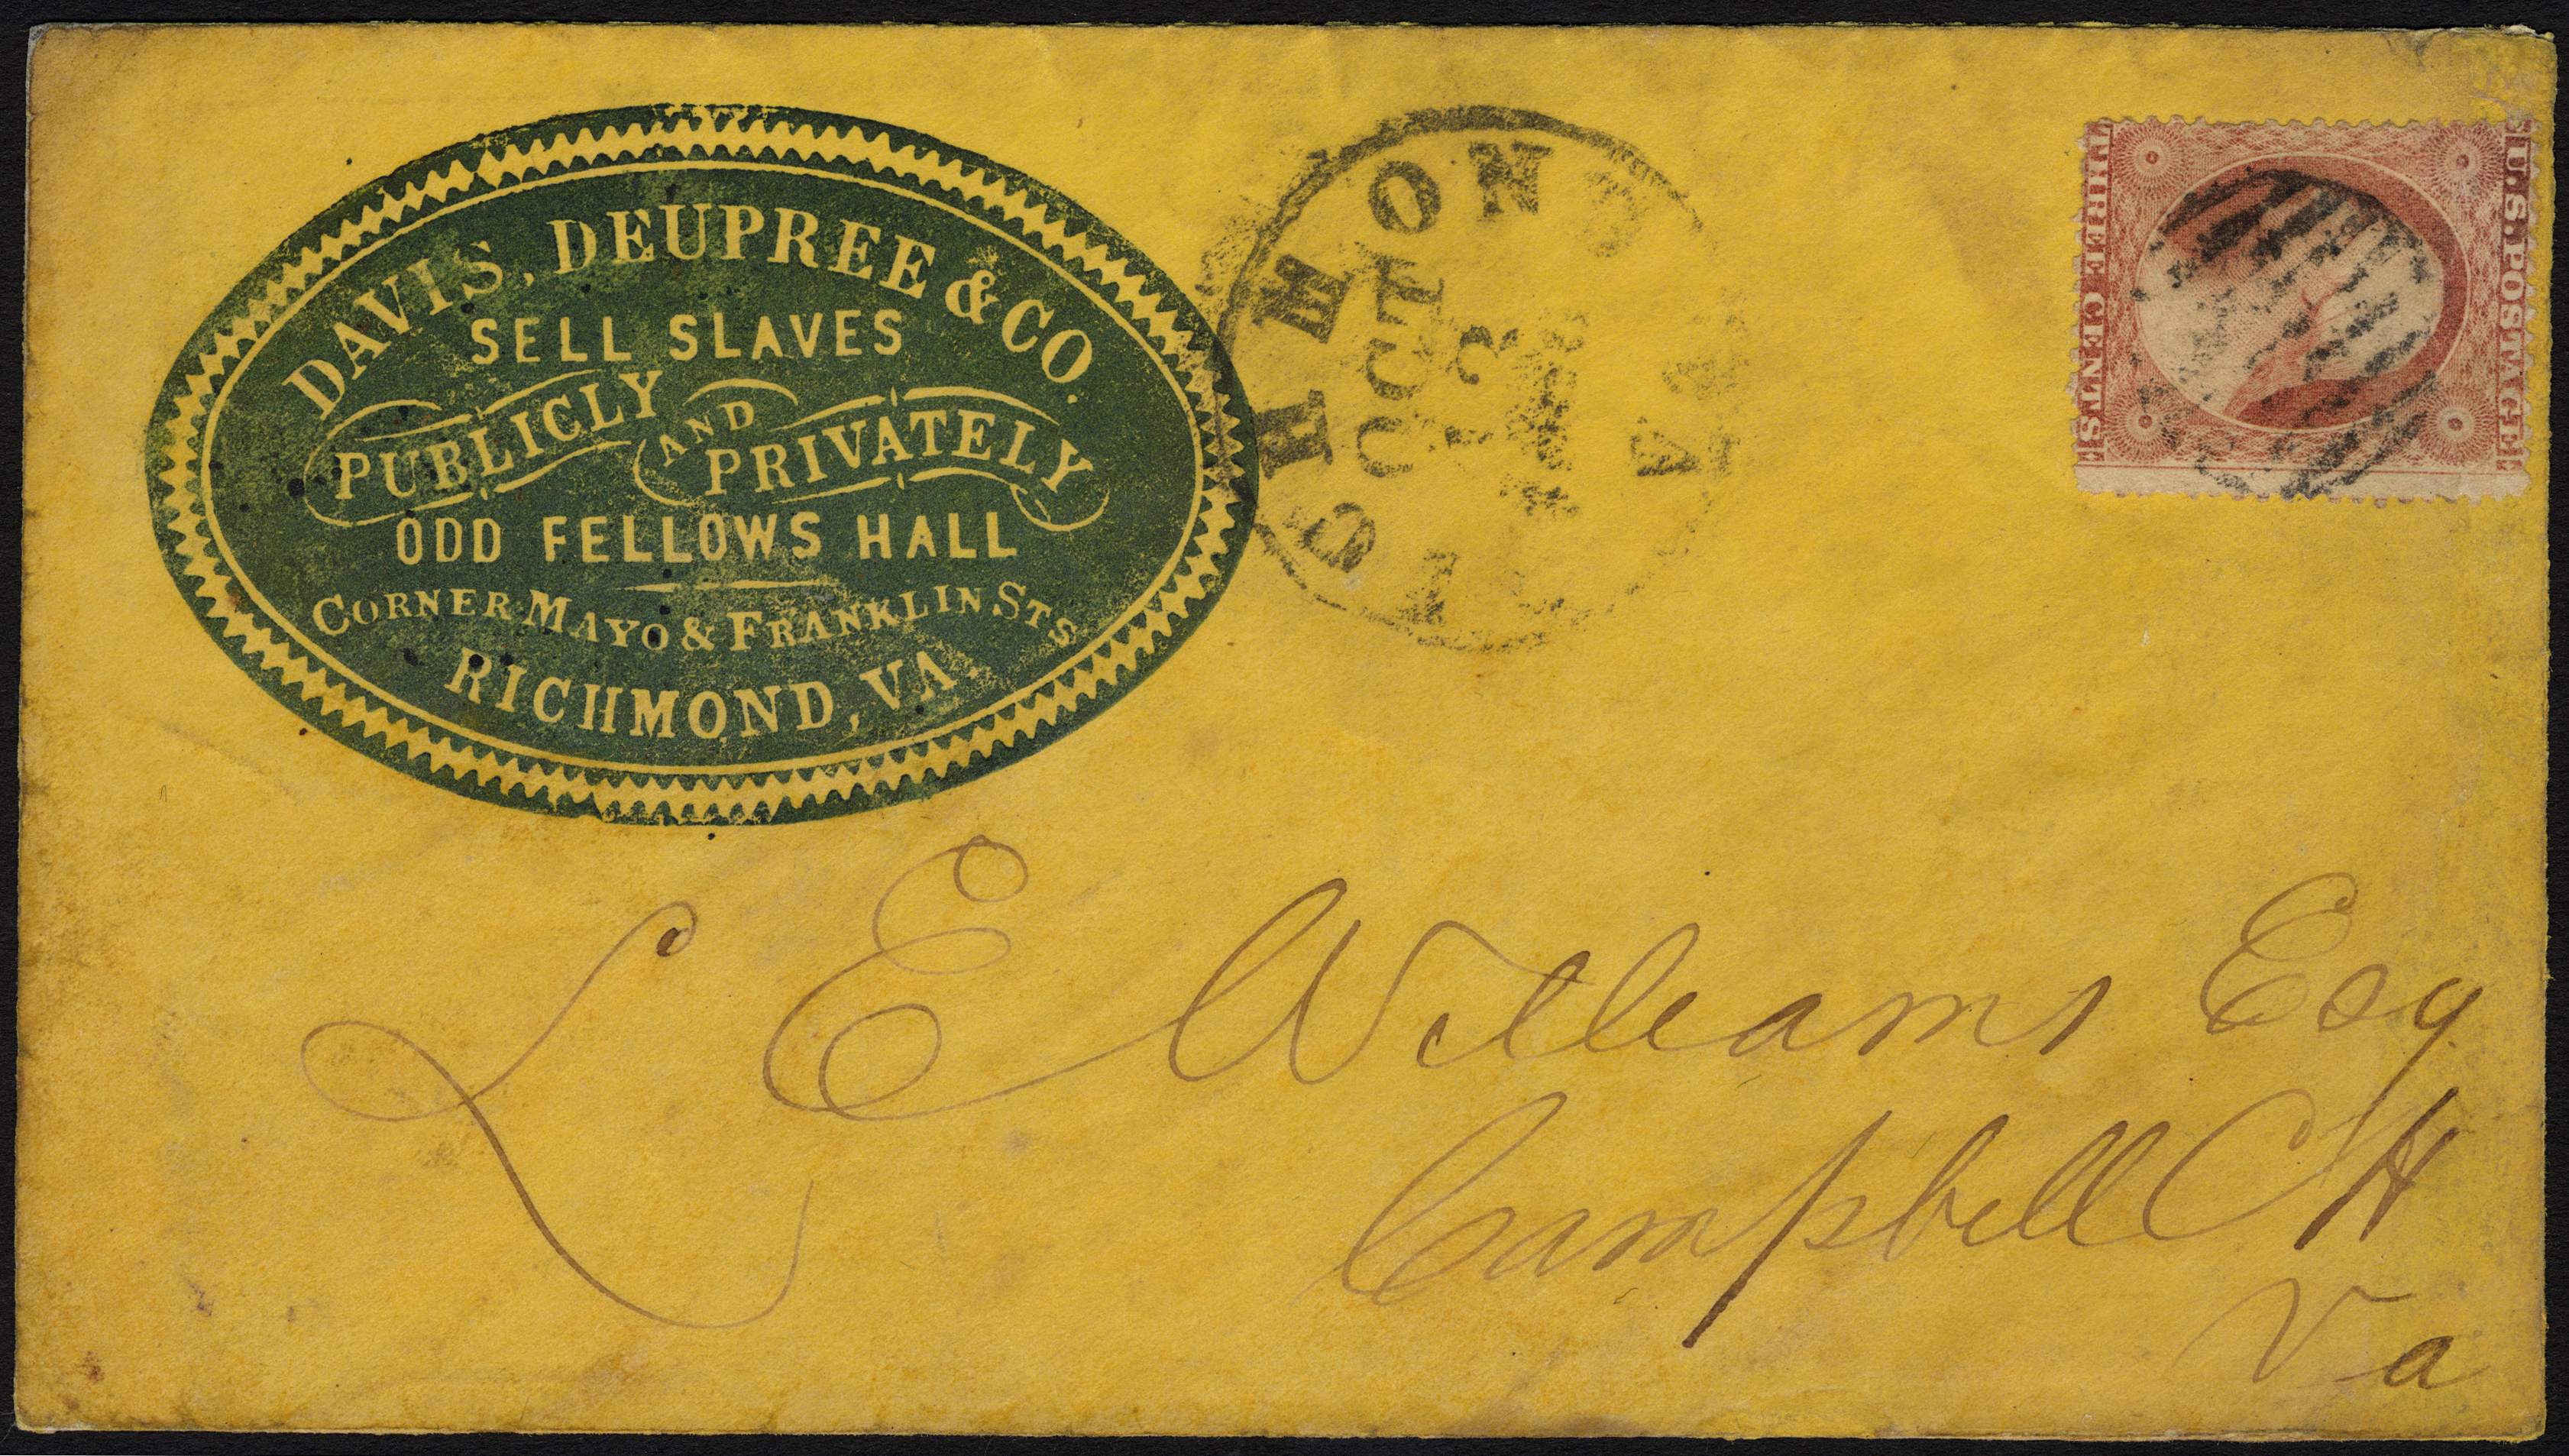 writing cover letters freedom davis deupree and company cover and letter 1860